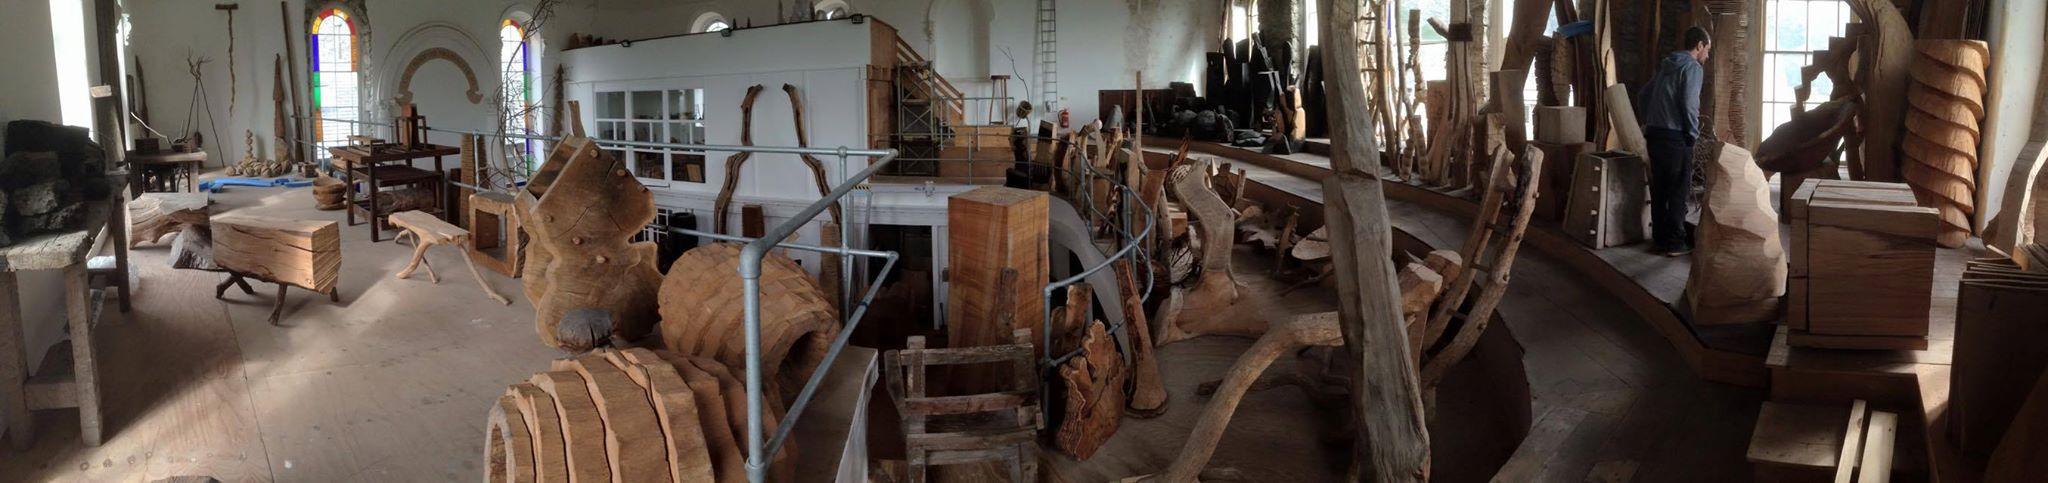 David Nash's Chapel Workshop